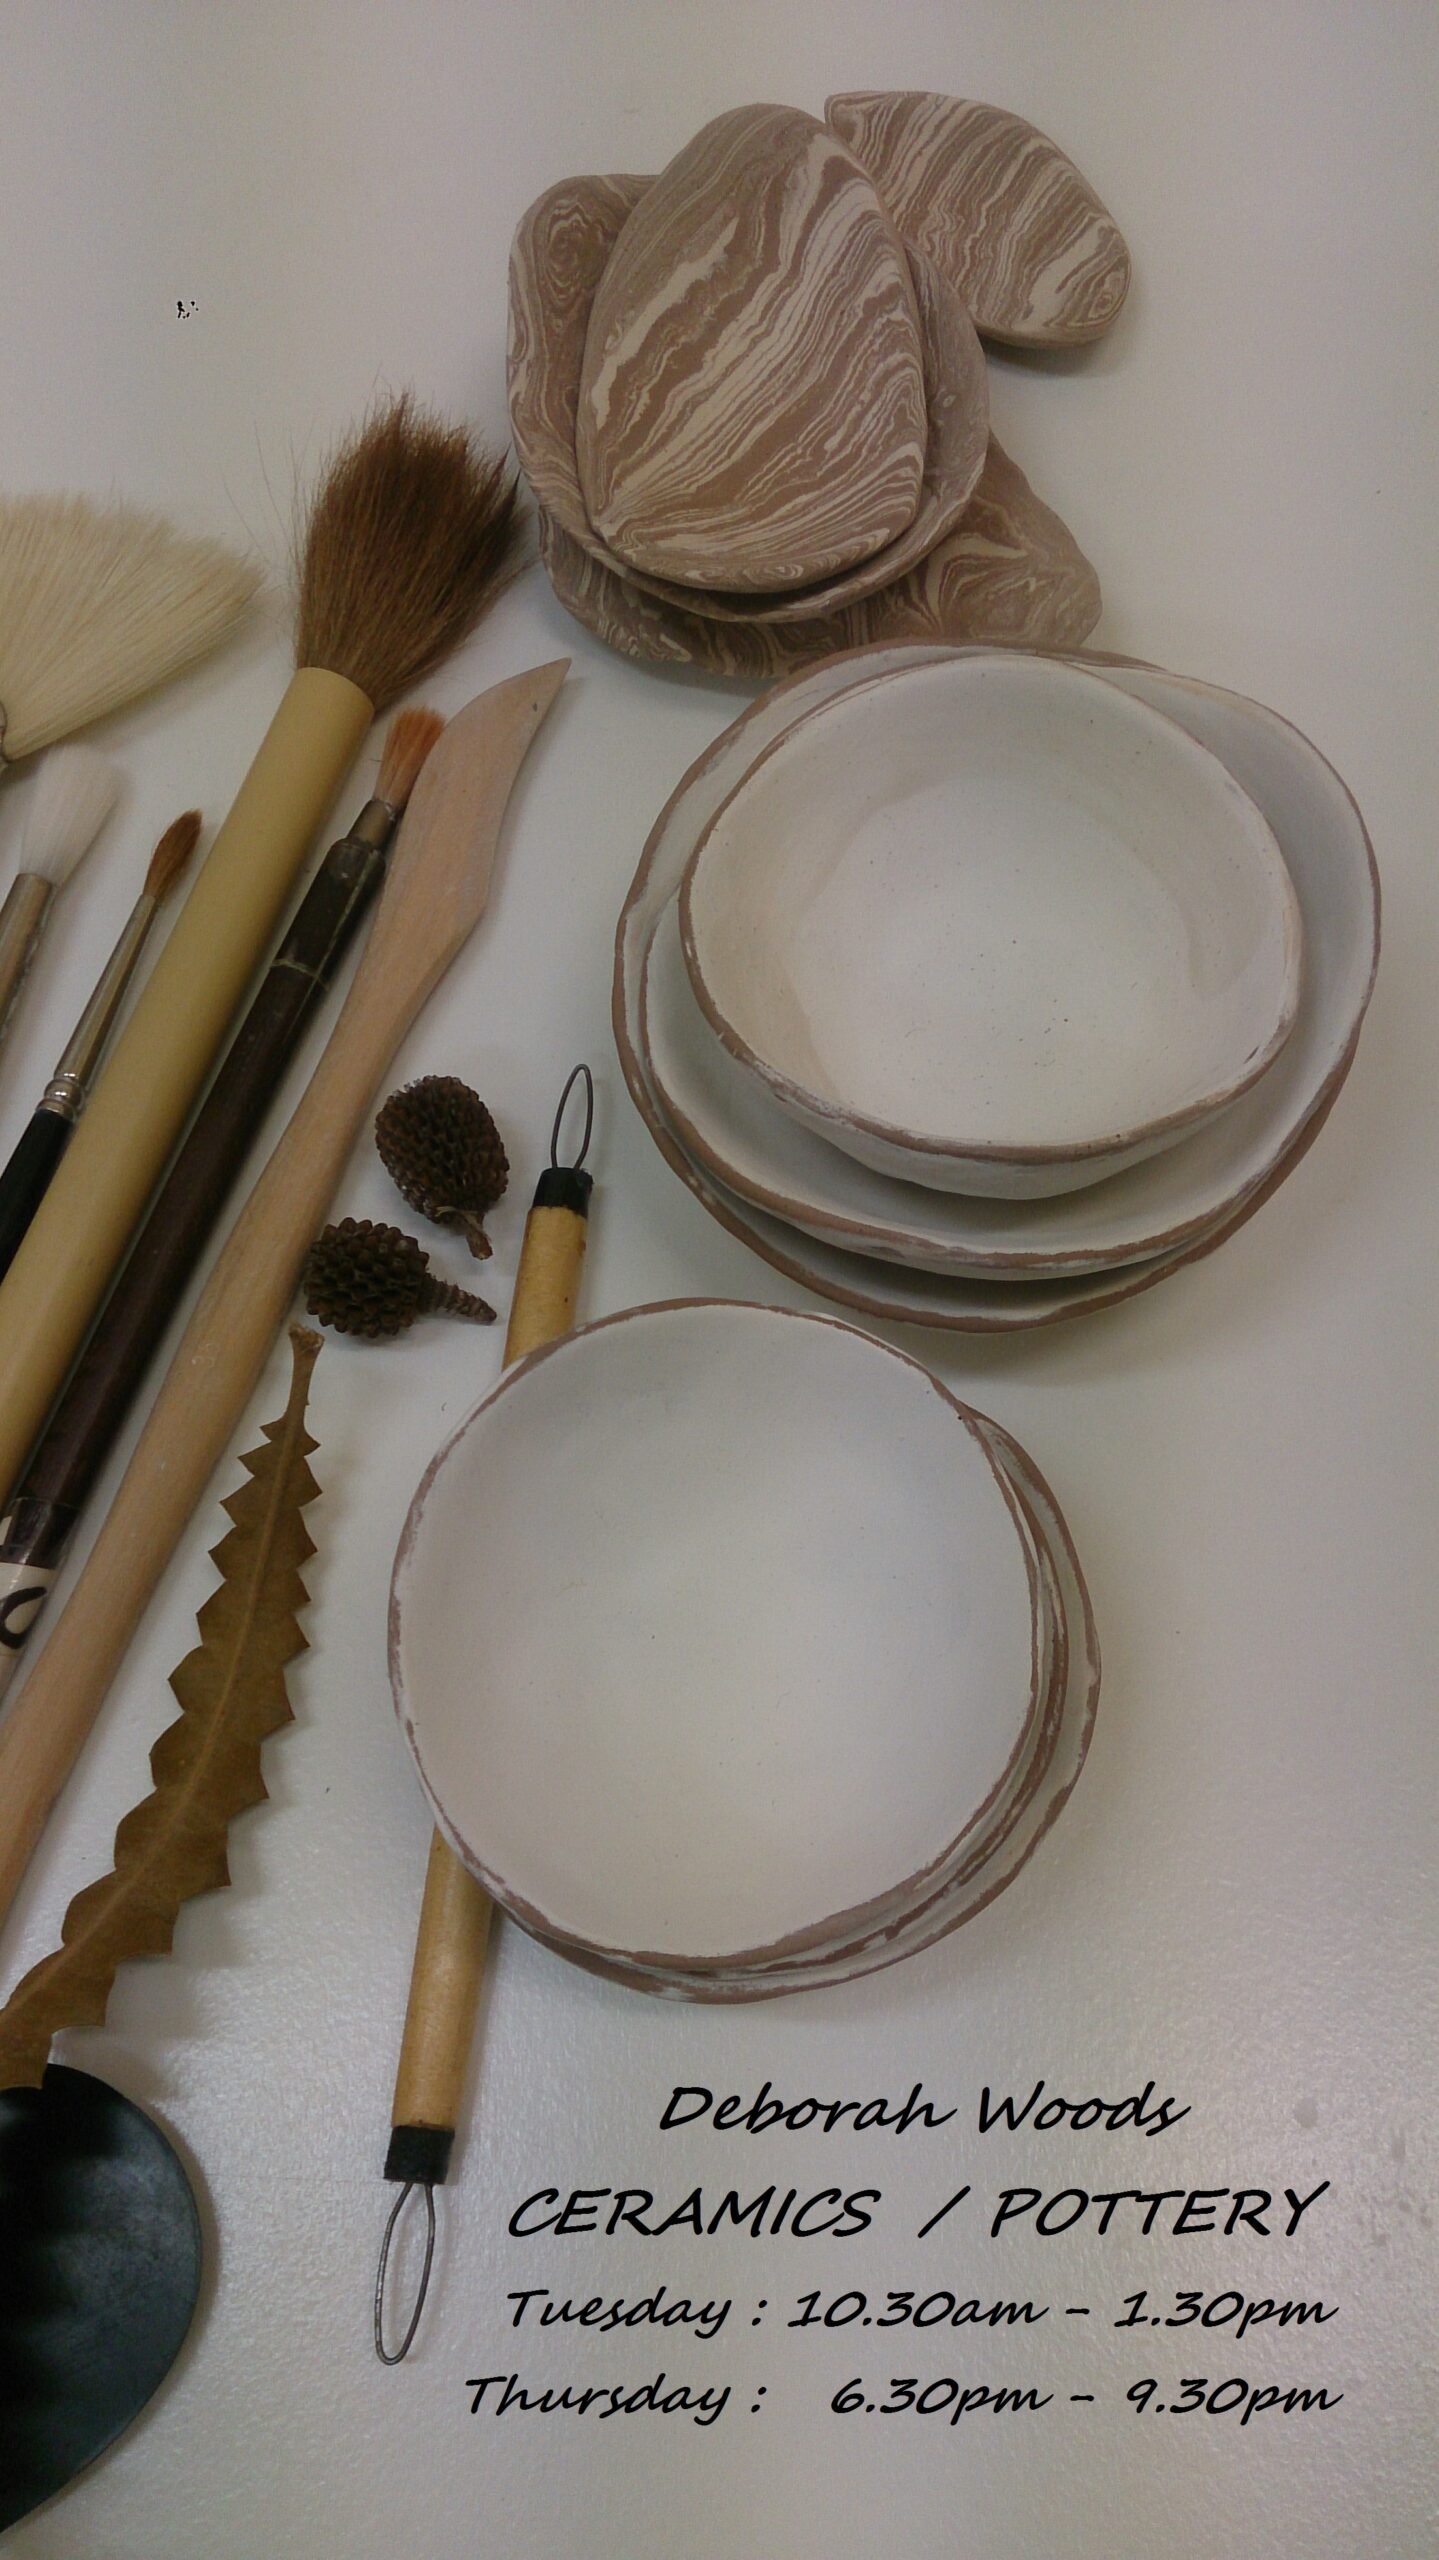 1 Deb Woods arcives – a pinch pots and tools